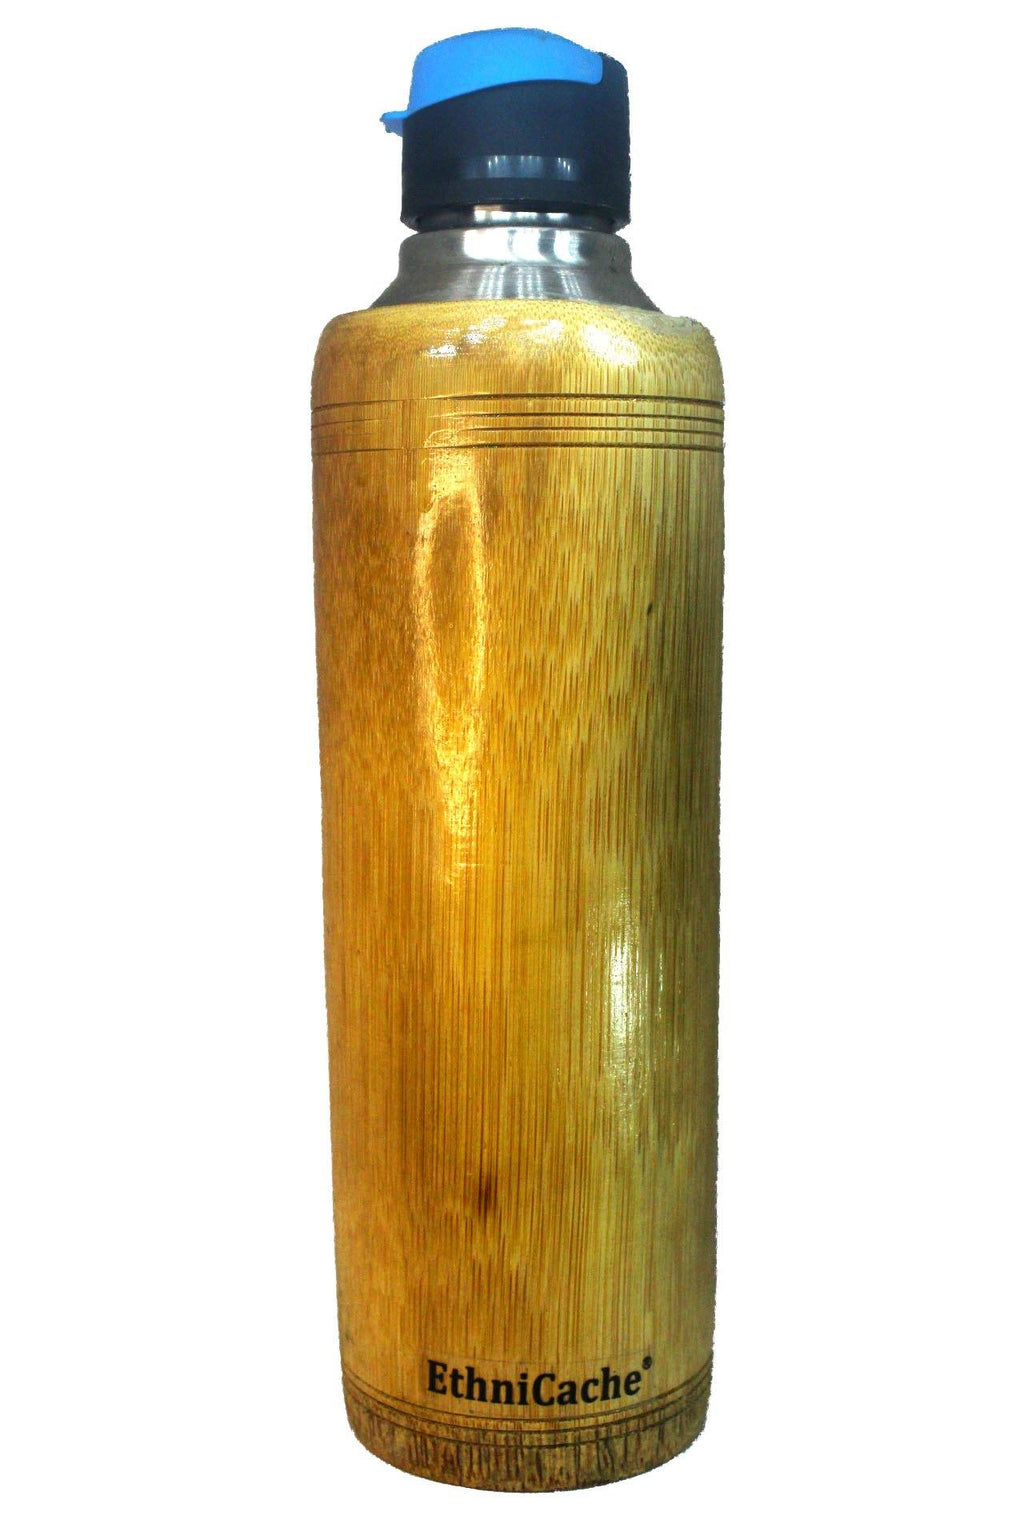 EthniCache Bottle Handmade Bamboo and Steel Sipper with Blue Lid